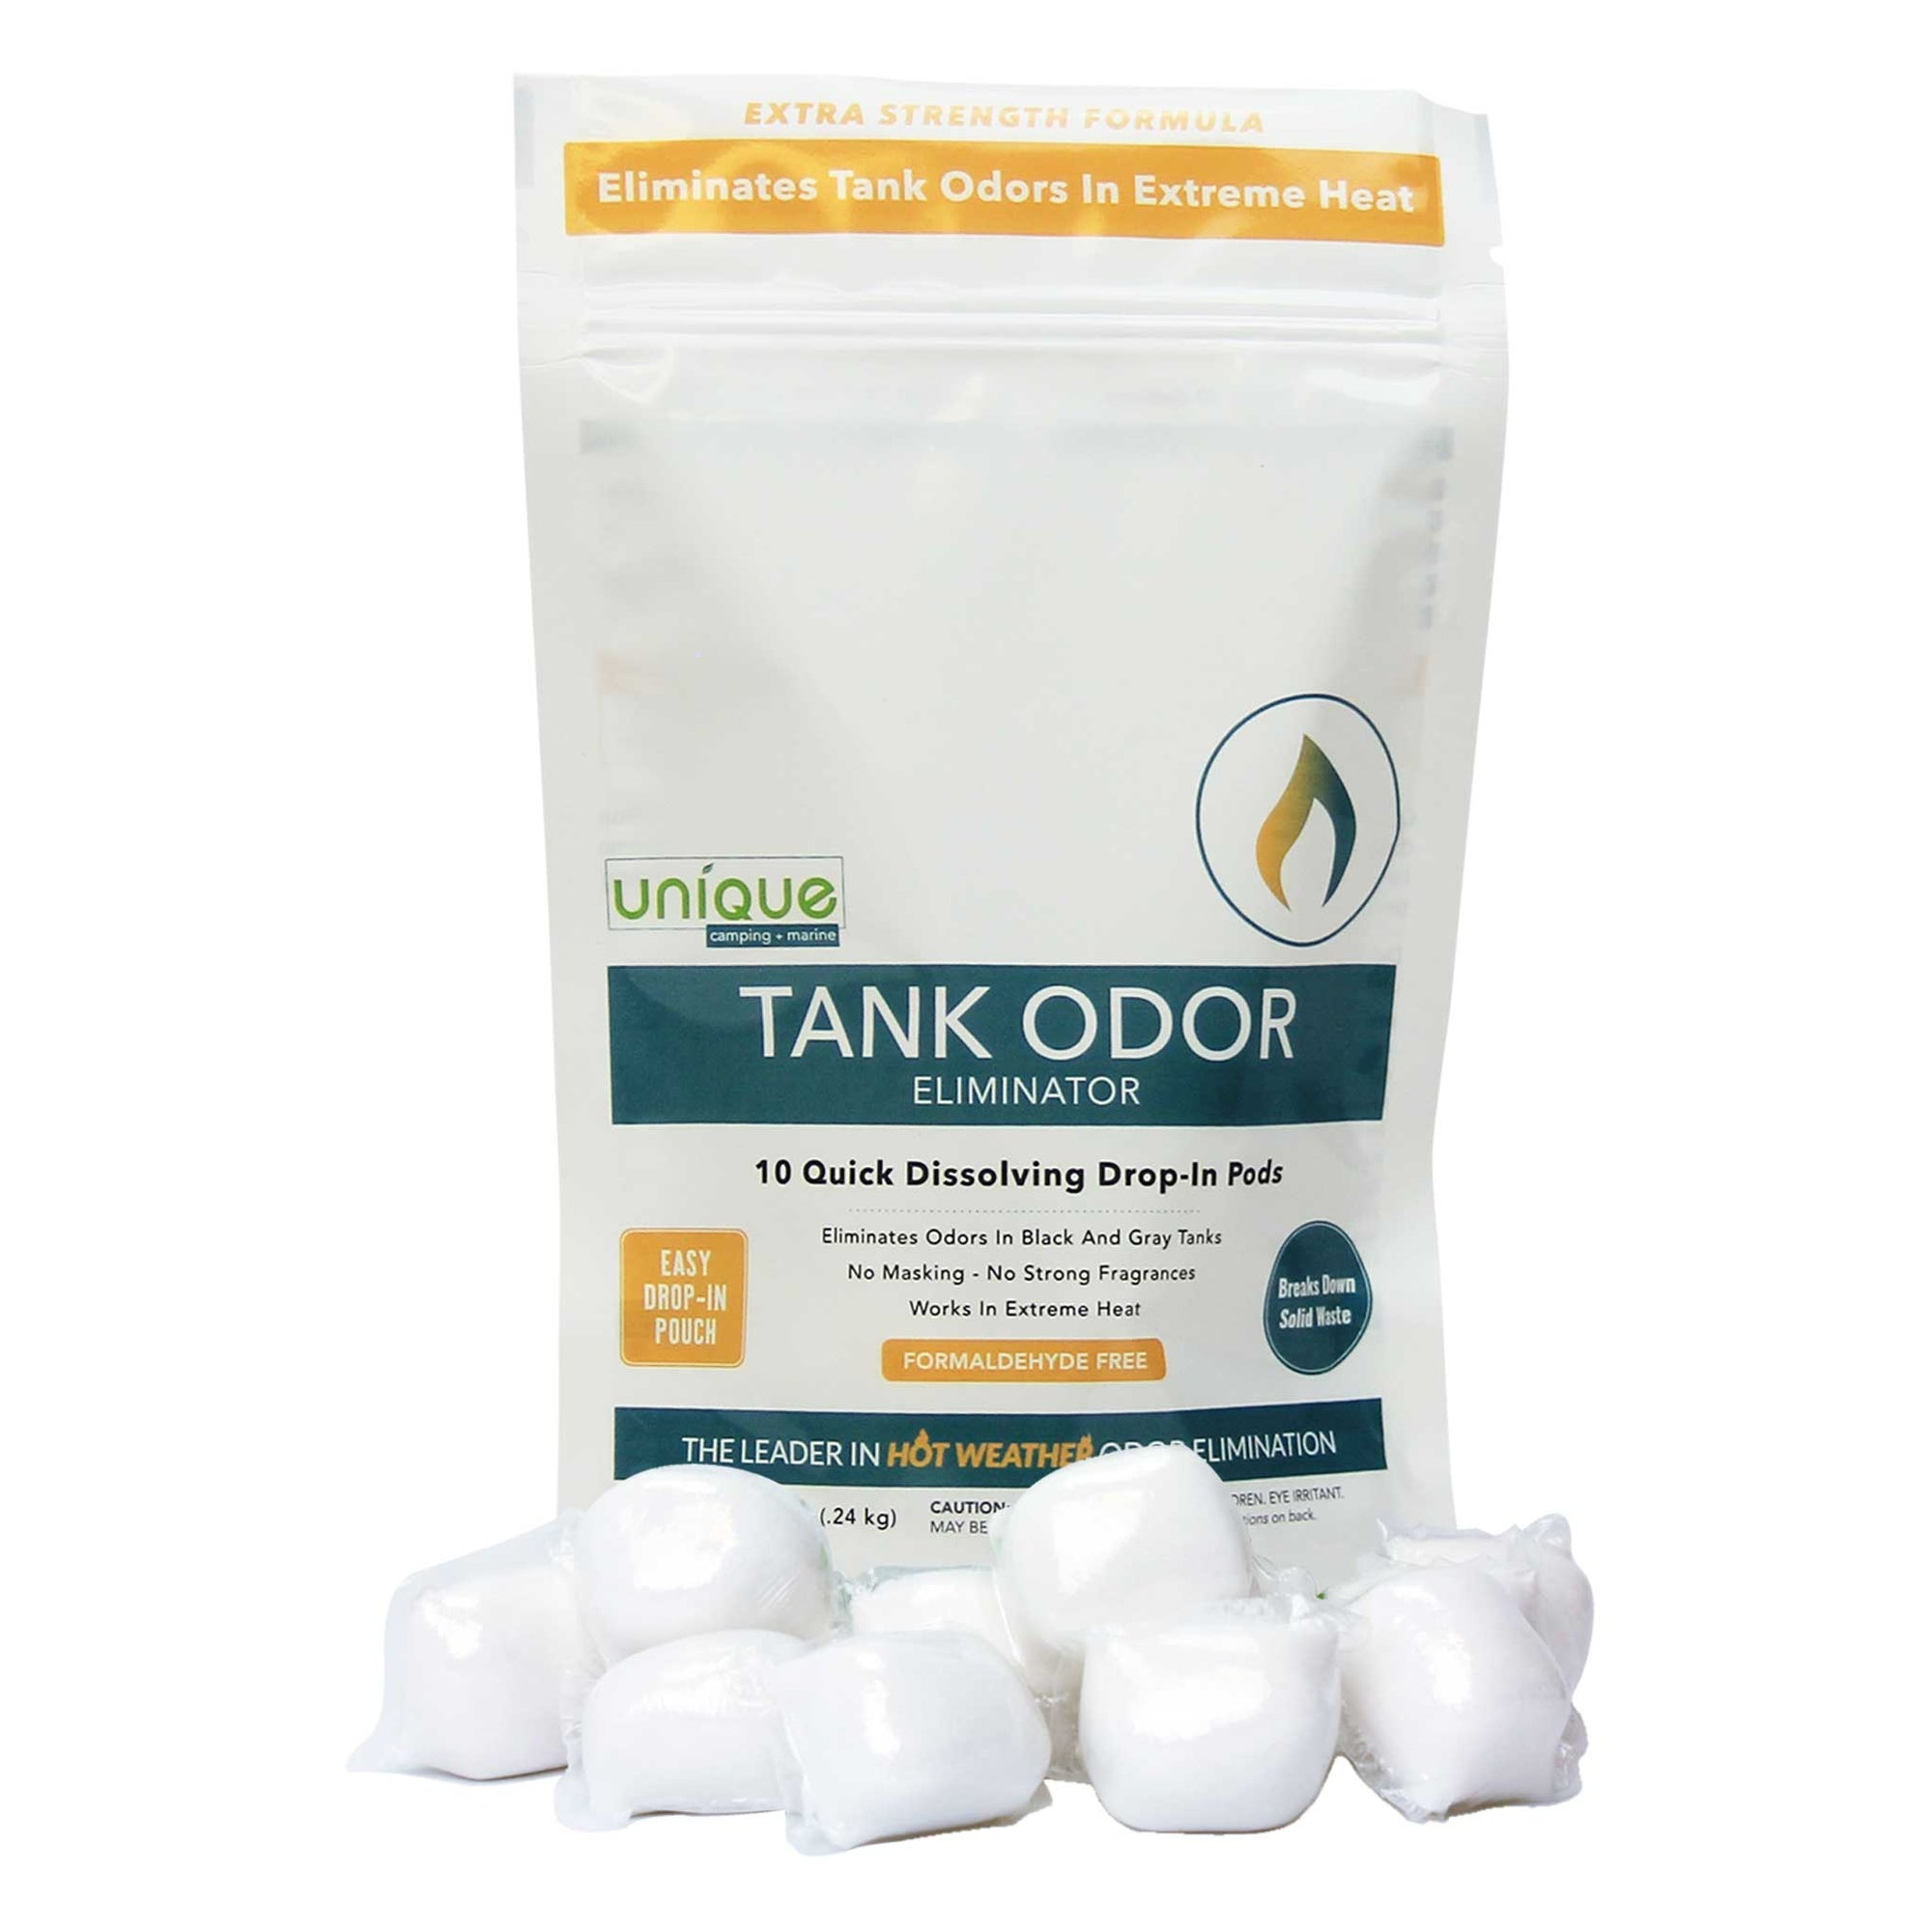 RV Tank Odor Eliminator controls RV bathroom odors in the highest heat. Control your stinky bathroom. Unique Camping + Marine